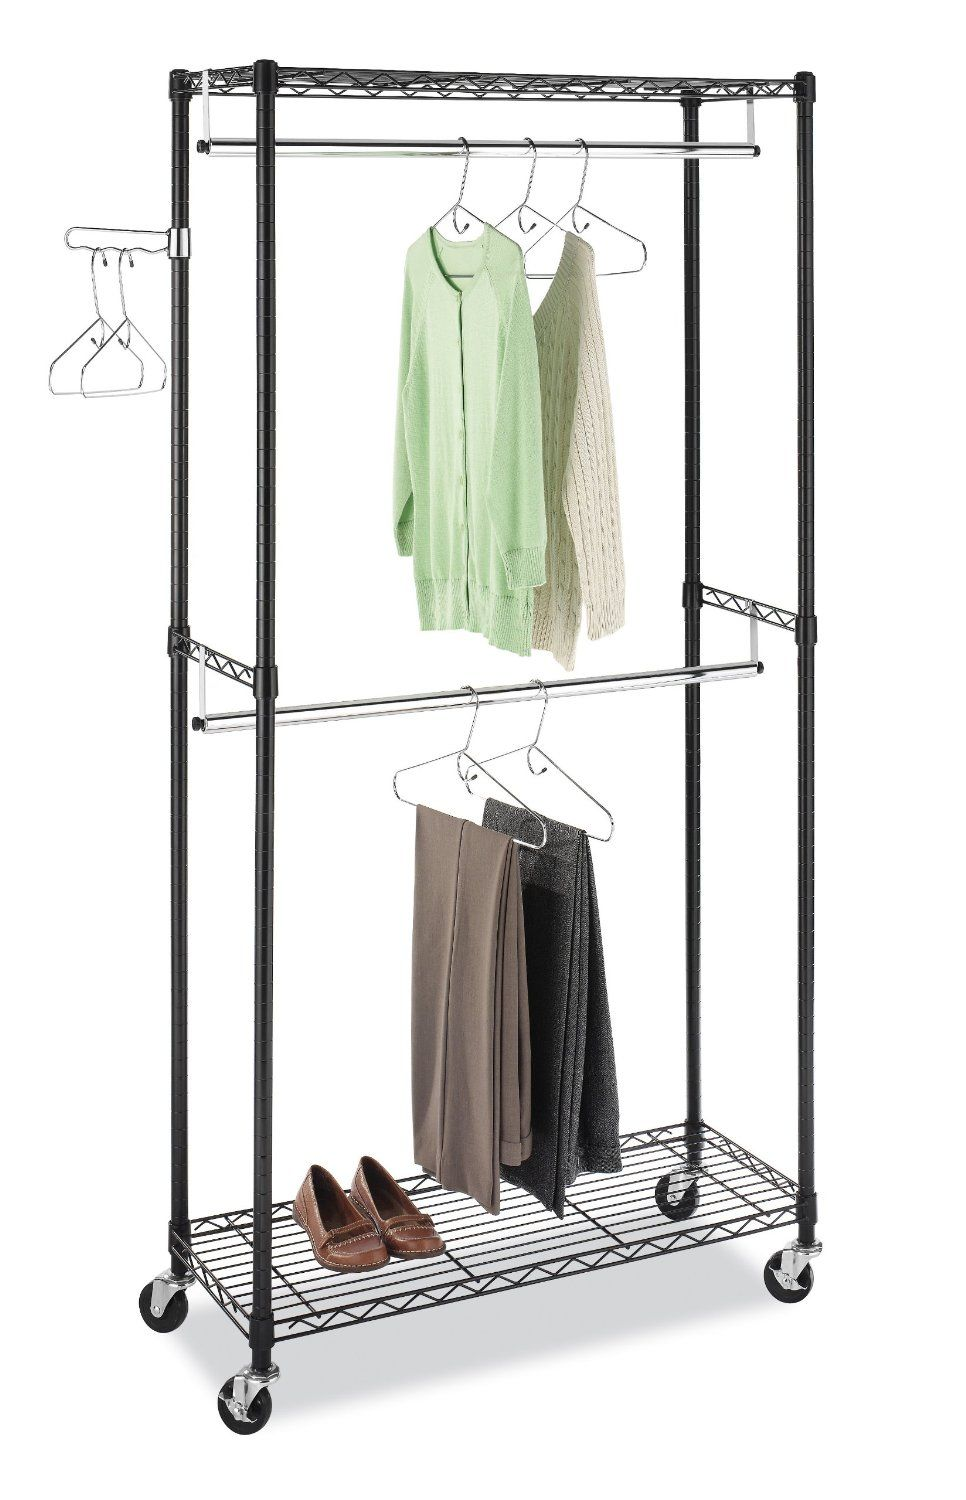 Store Extra Clothes And Accessories On This Supreme Double Rod Garment Rack  From Whitmor. With Its Heavy Duty Construction This Rack Features Black  Epoxy ...